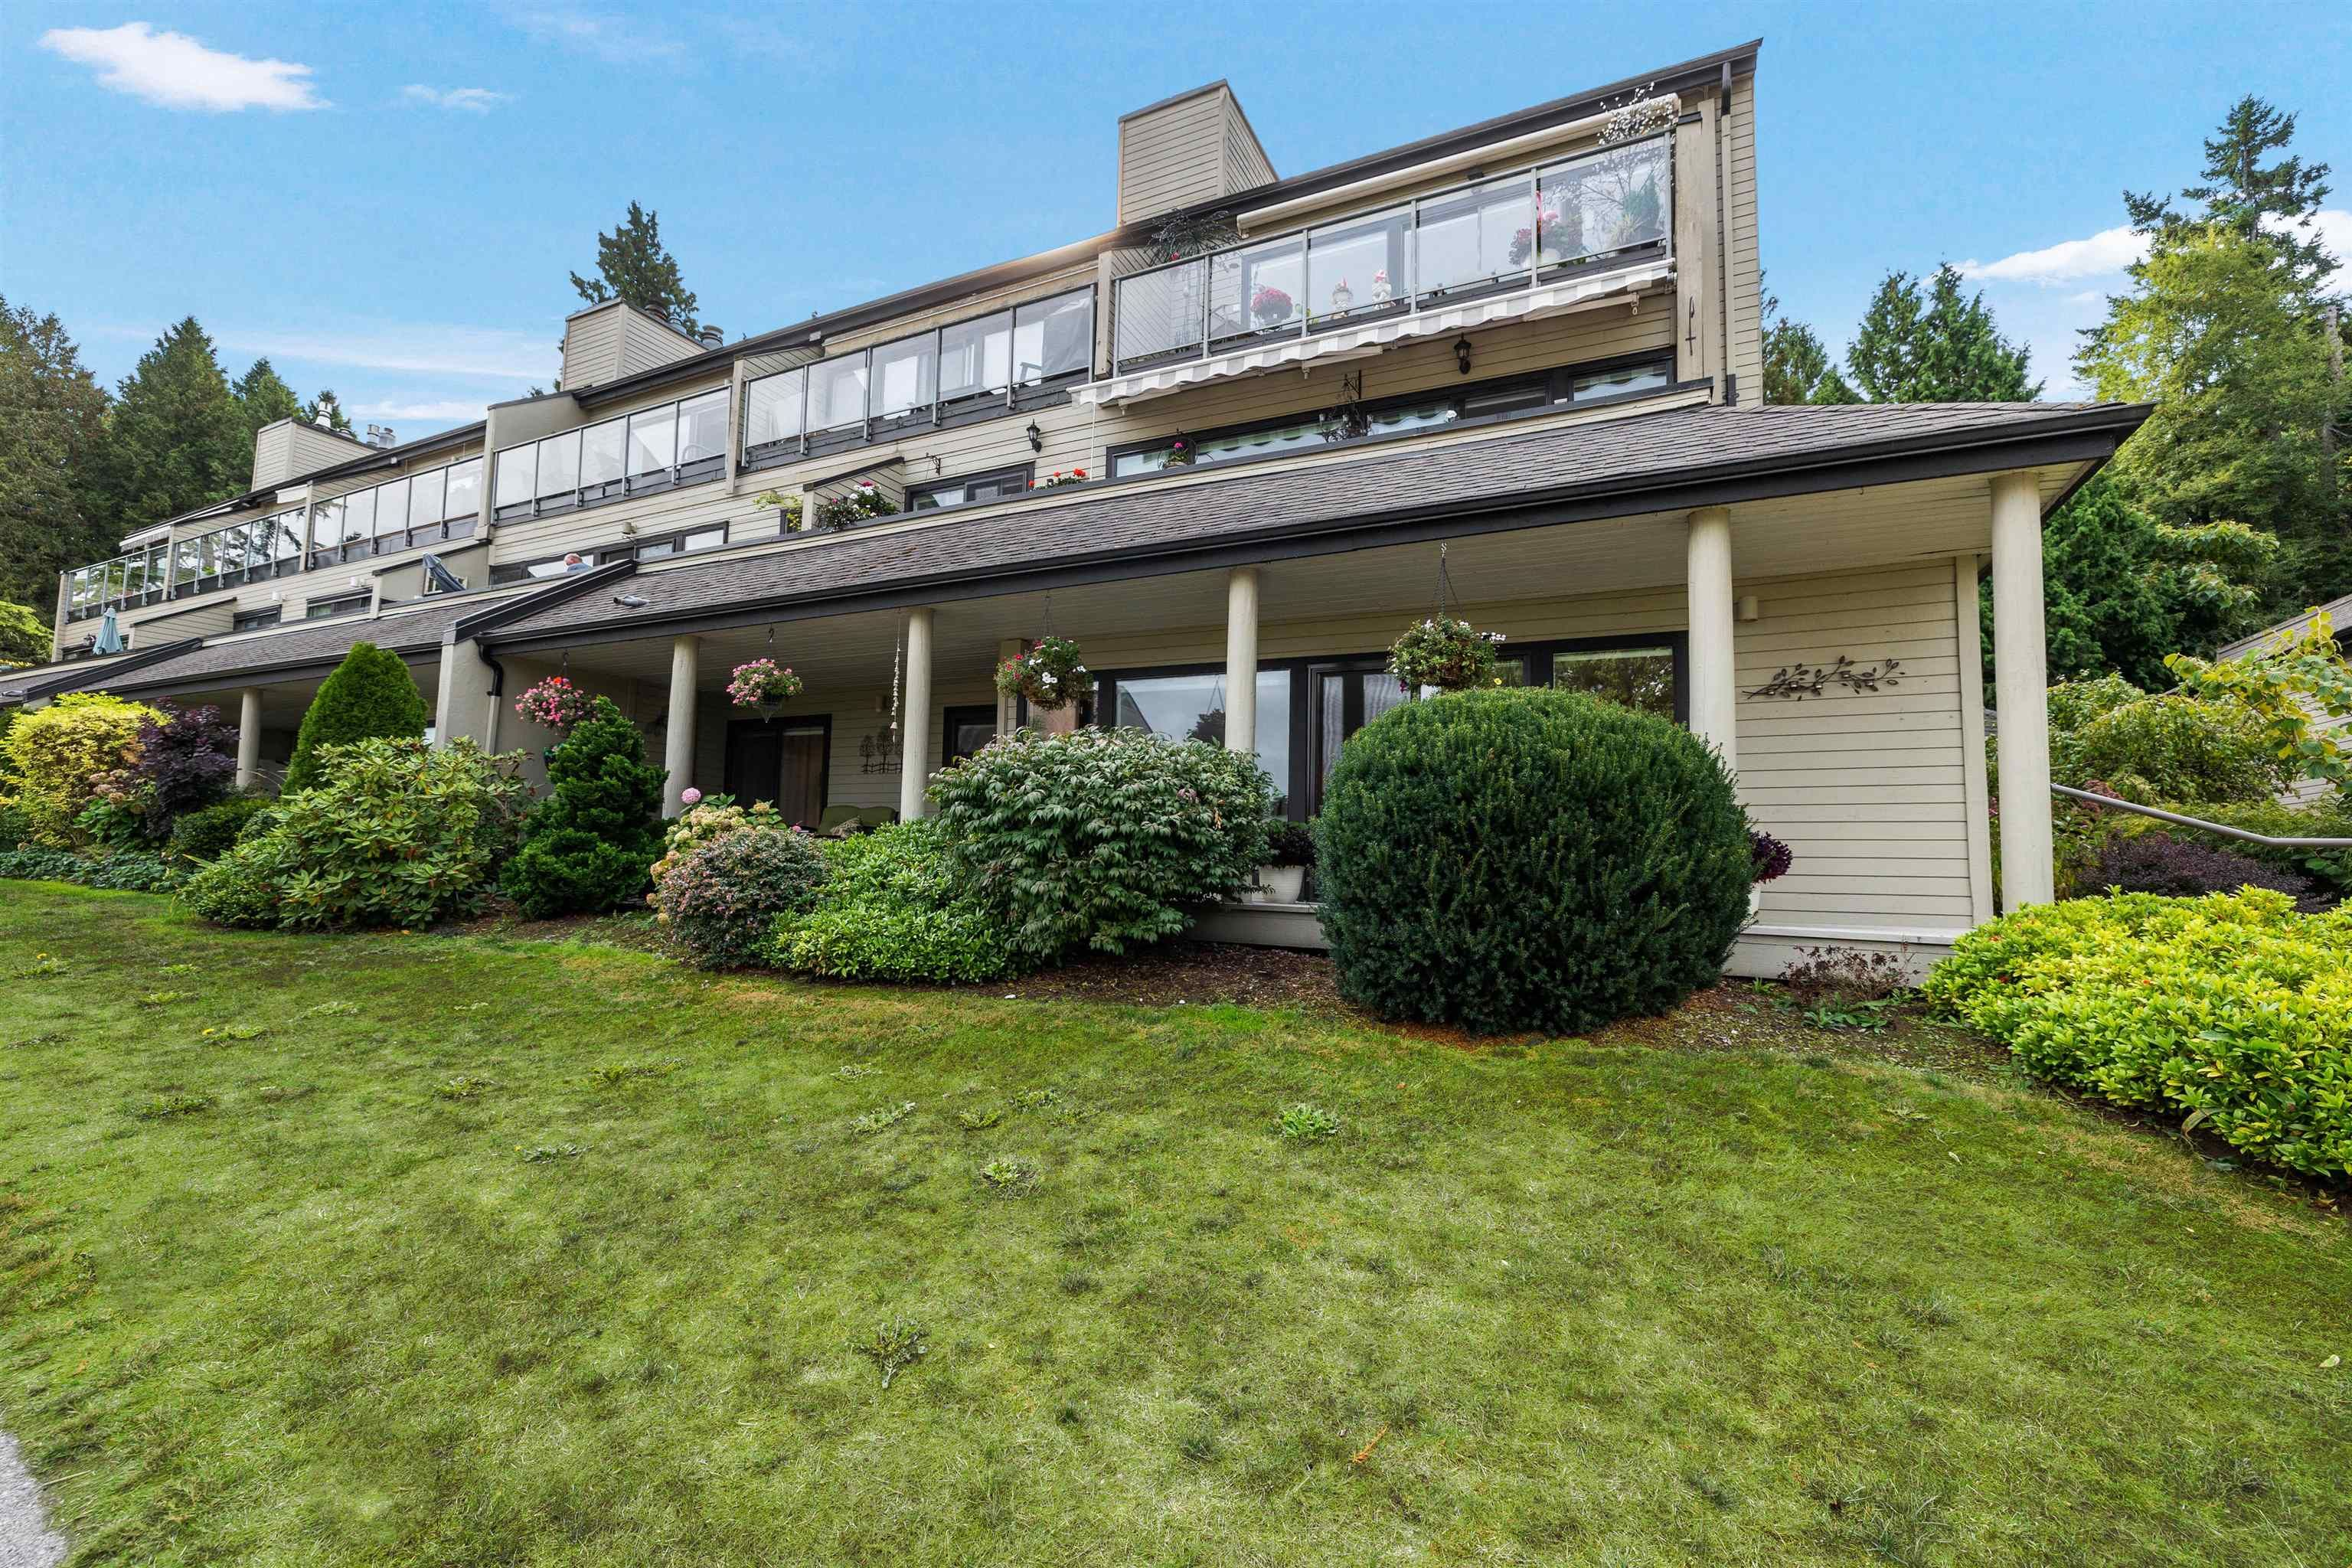 Main Photo: 1 14045 NICO WYND Place in Surrey: Elgin Chantrell Condo for sale (South Surrey White Rock)  : MLS®# R2618388